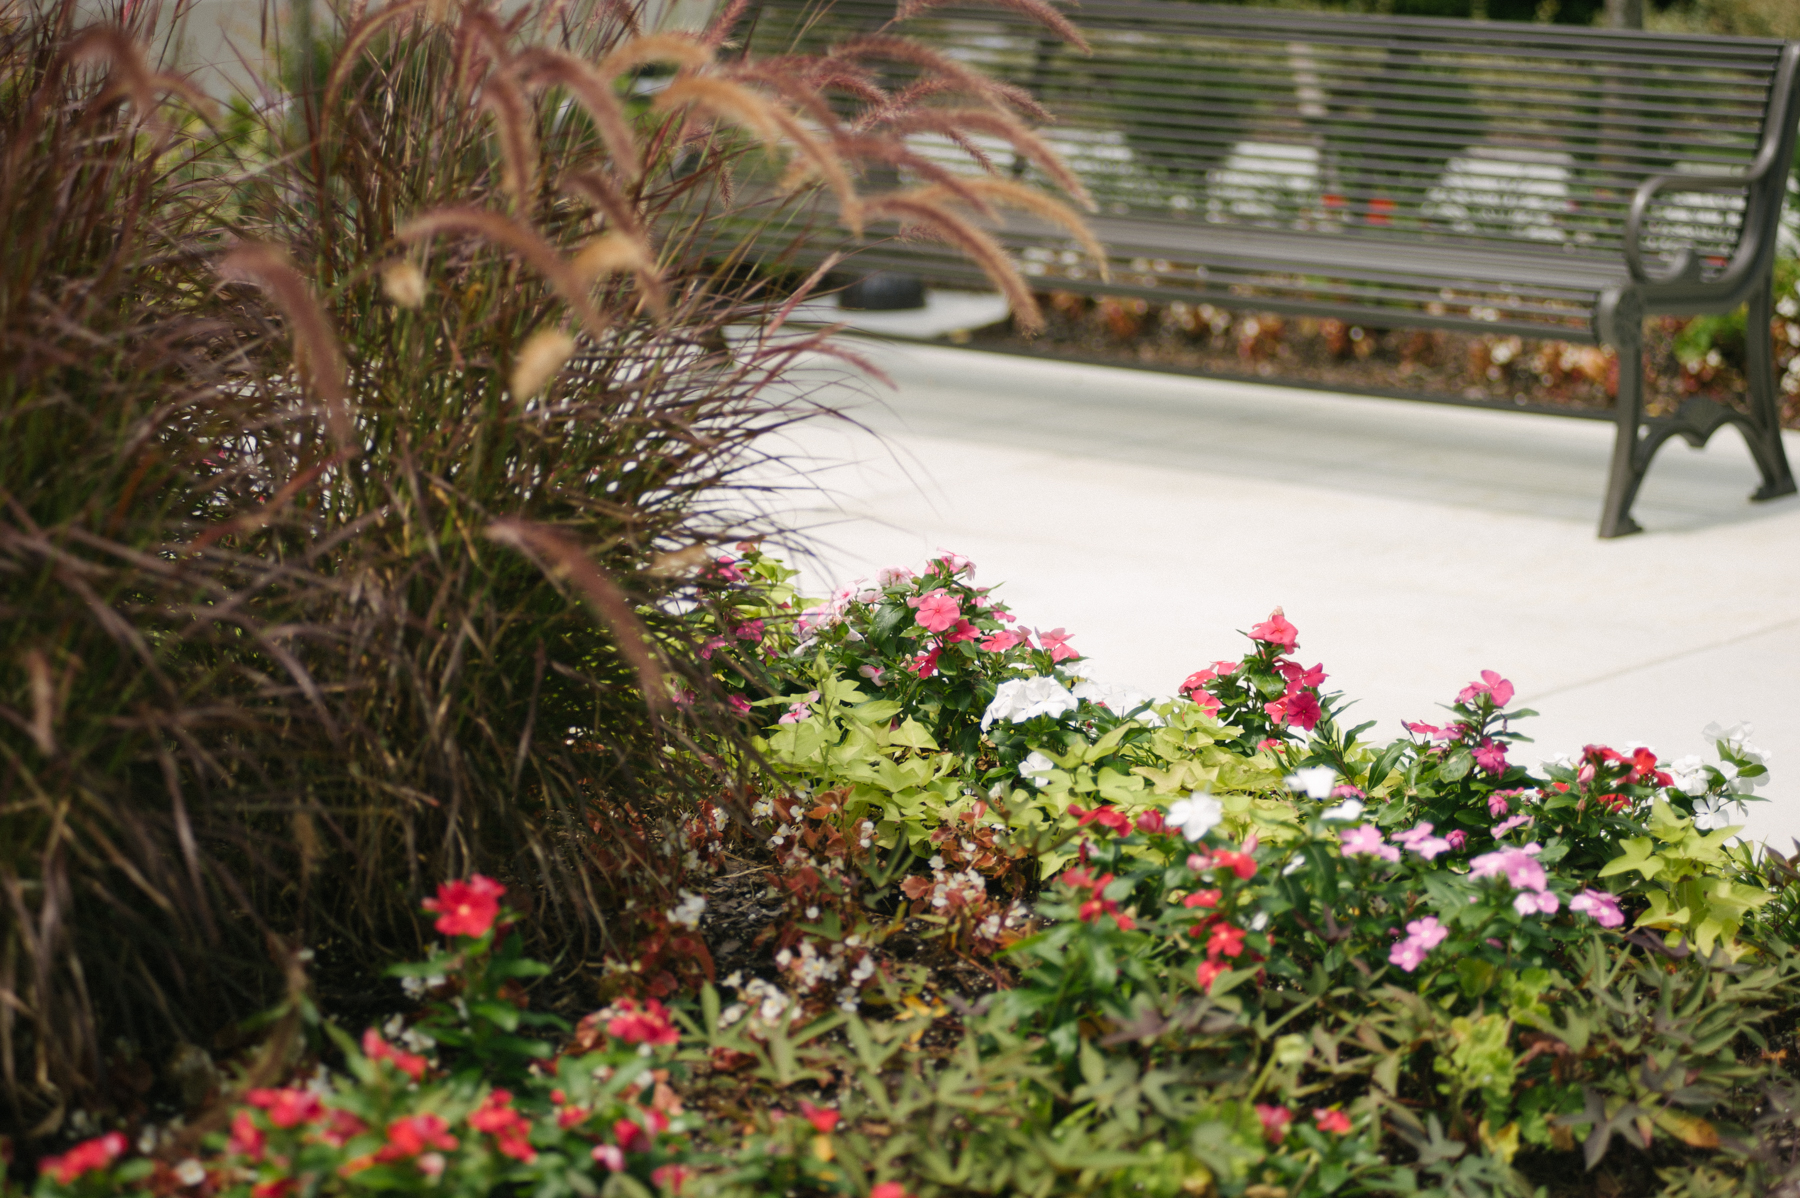 Plant bed with variety of annual flowers